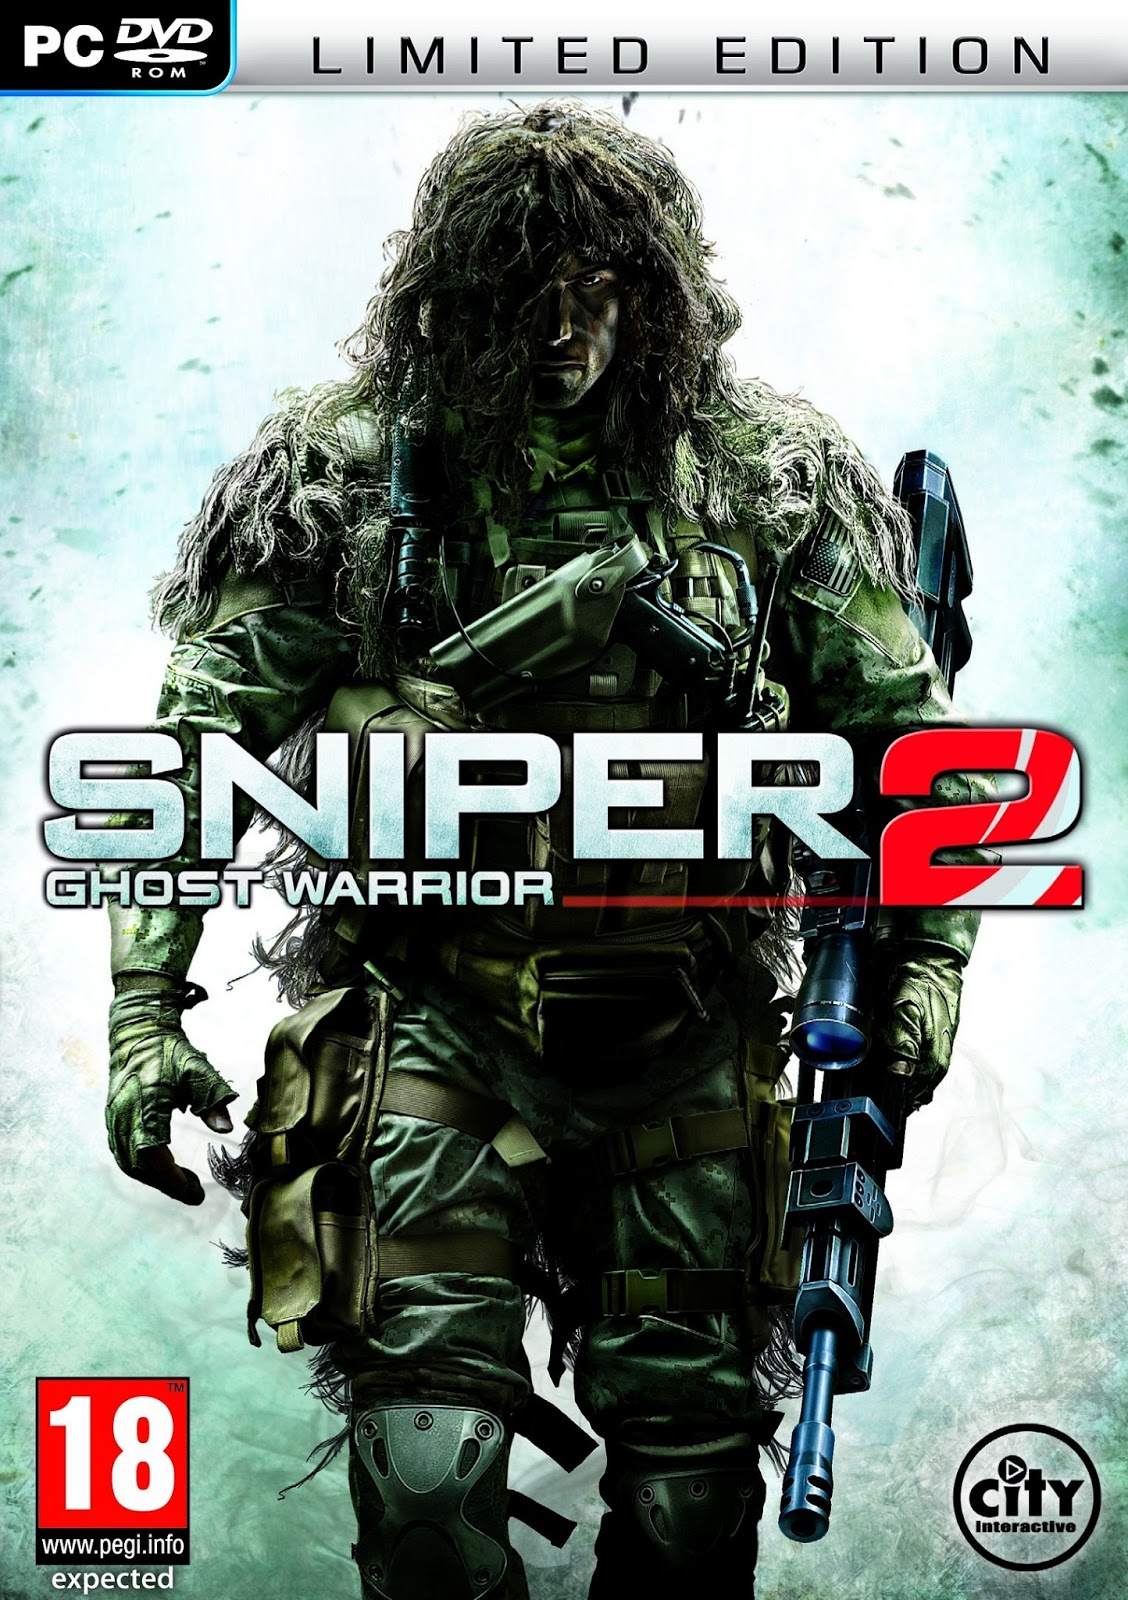 [Resim: sniper+ghost+warrior+2+flt+pc+full.jpg]